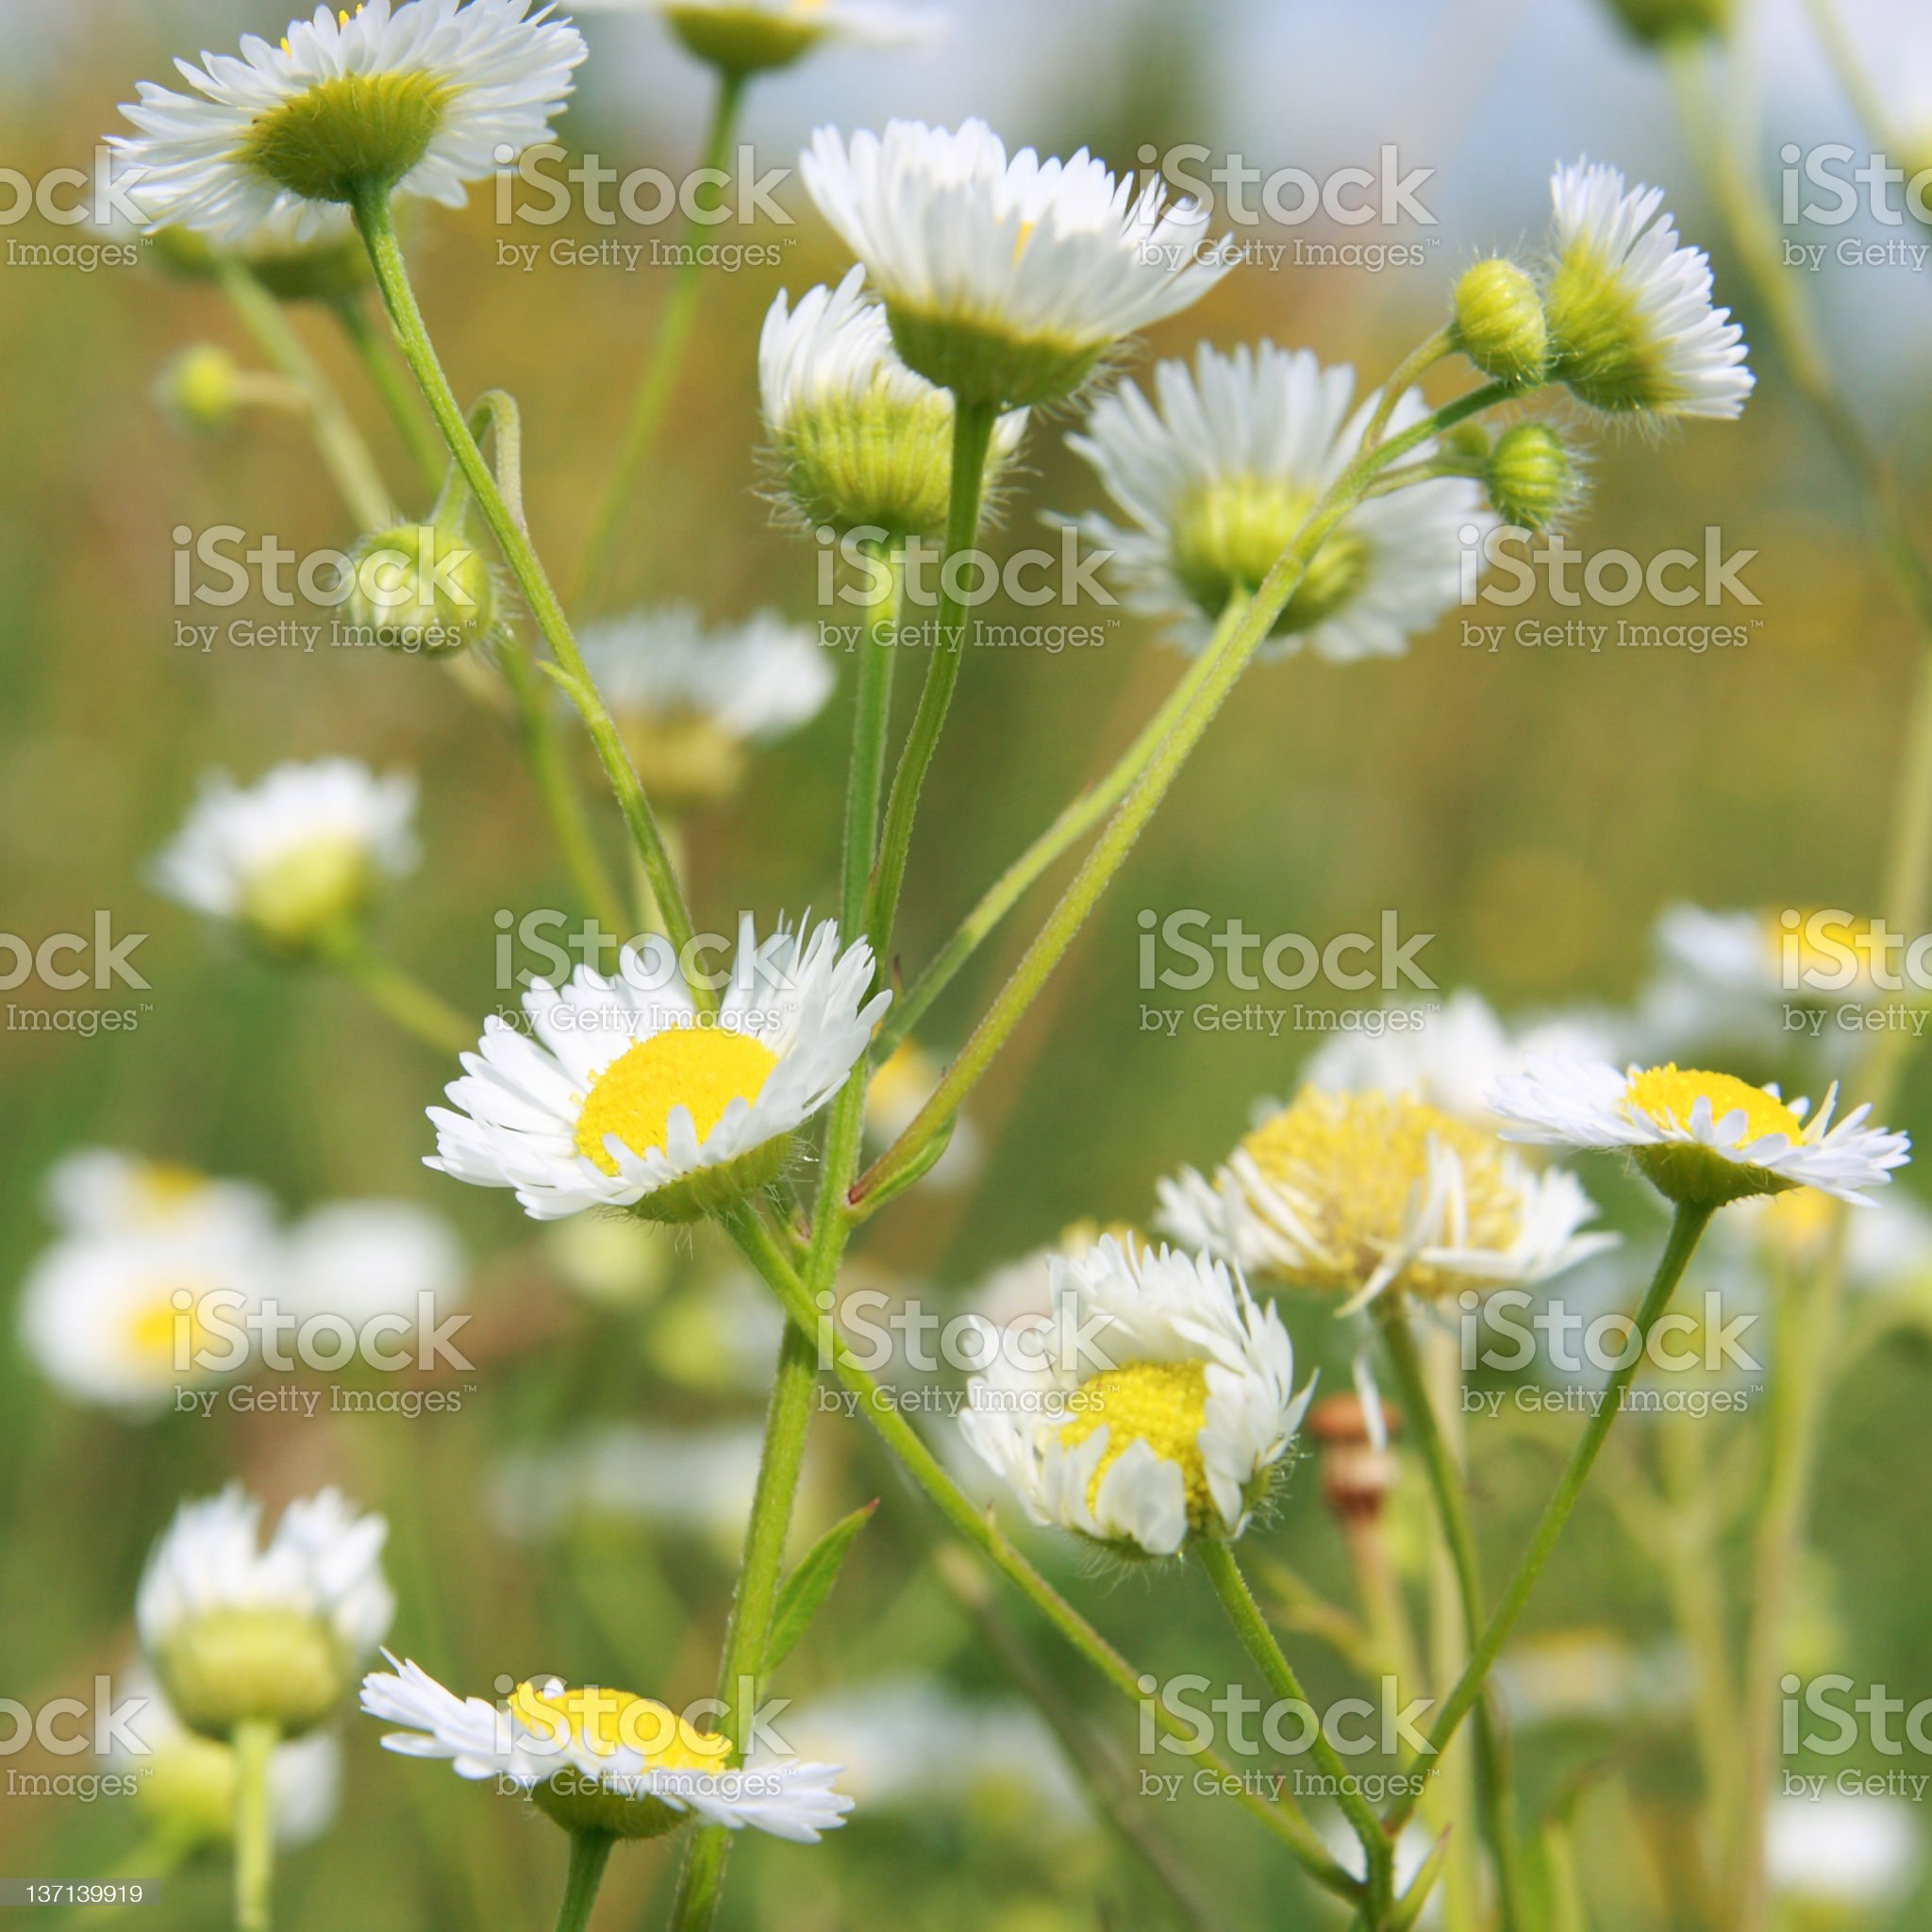 Camomile. royalty-free stock photo